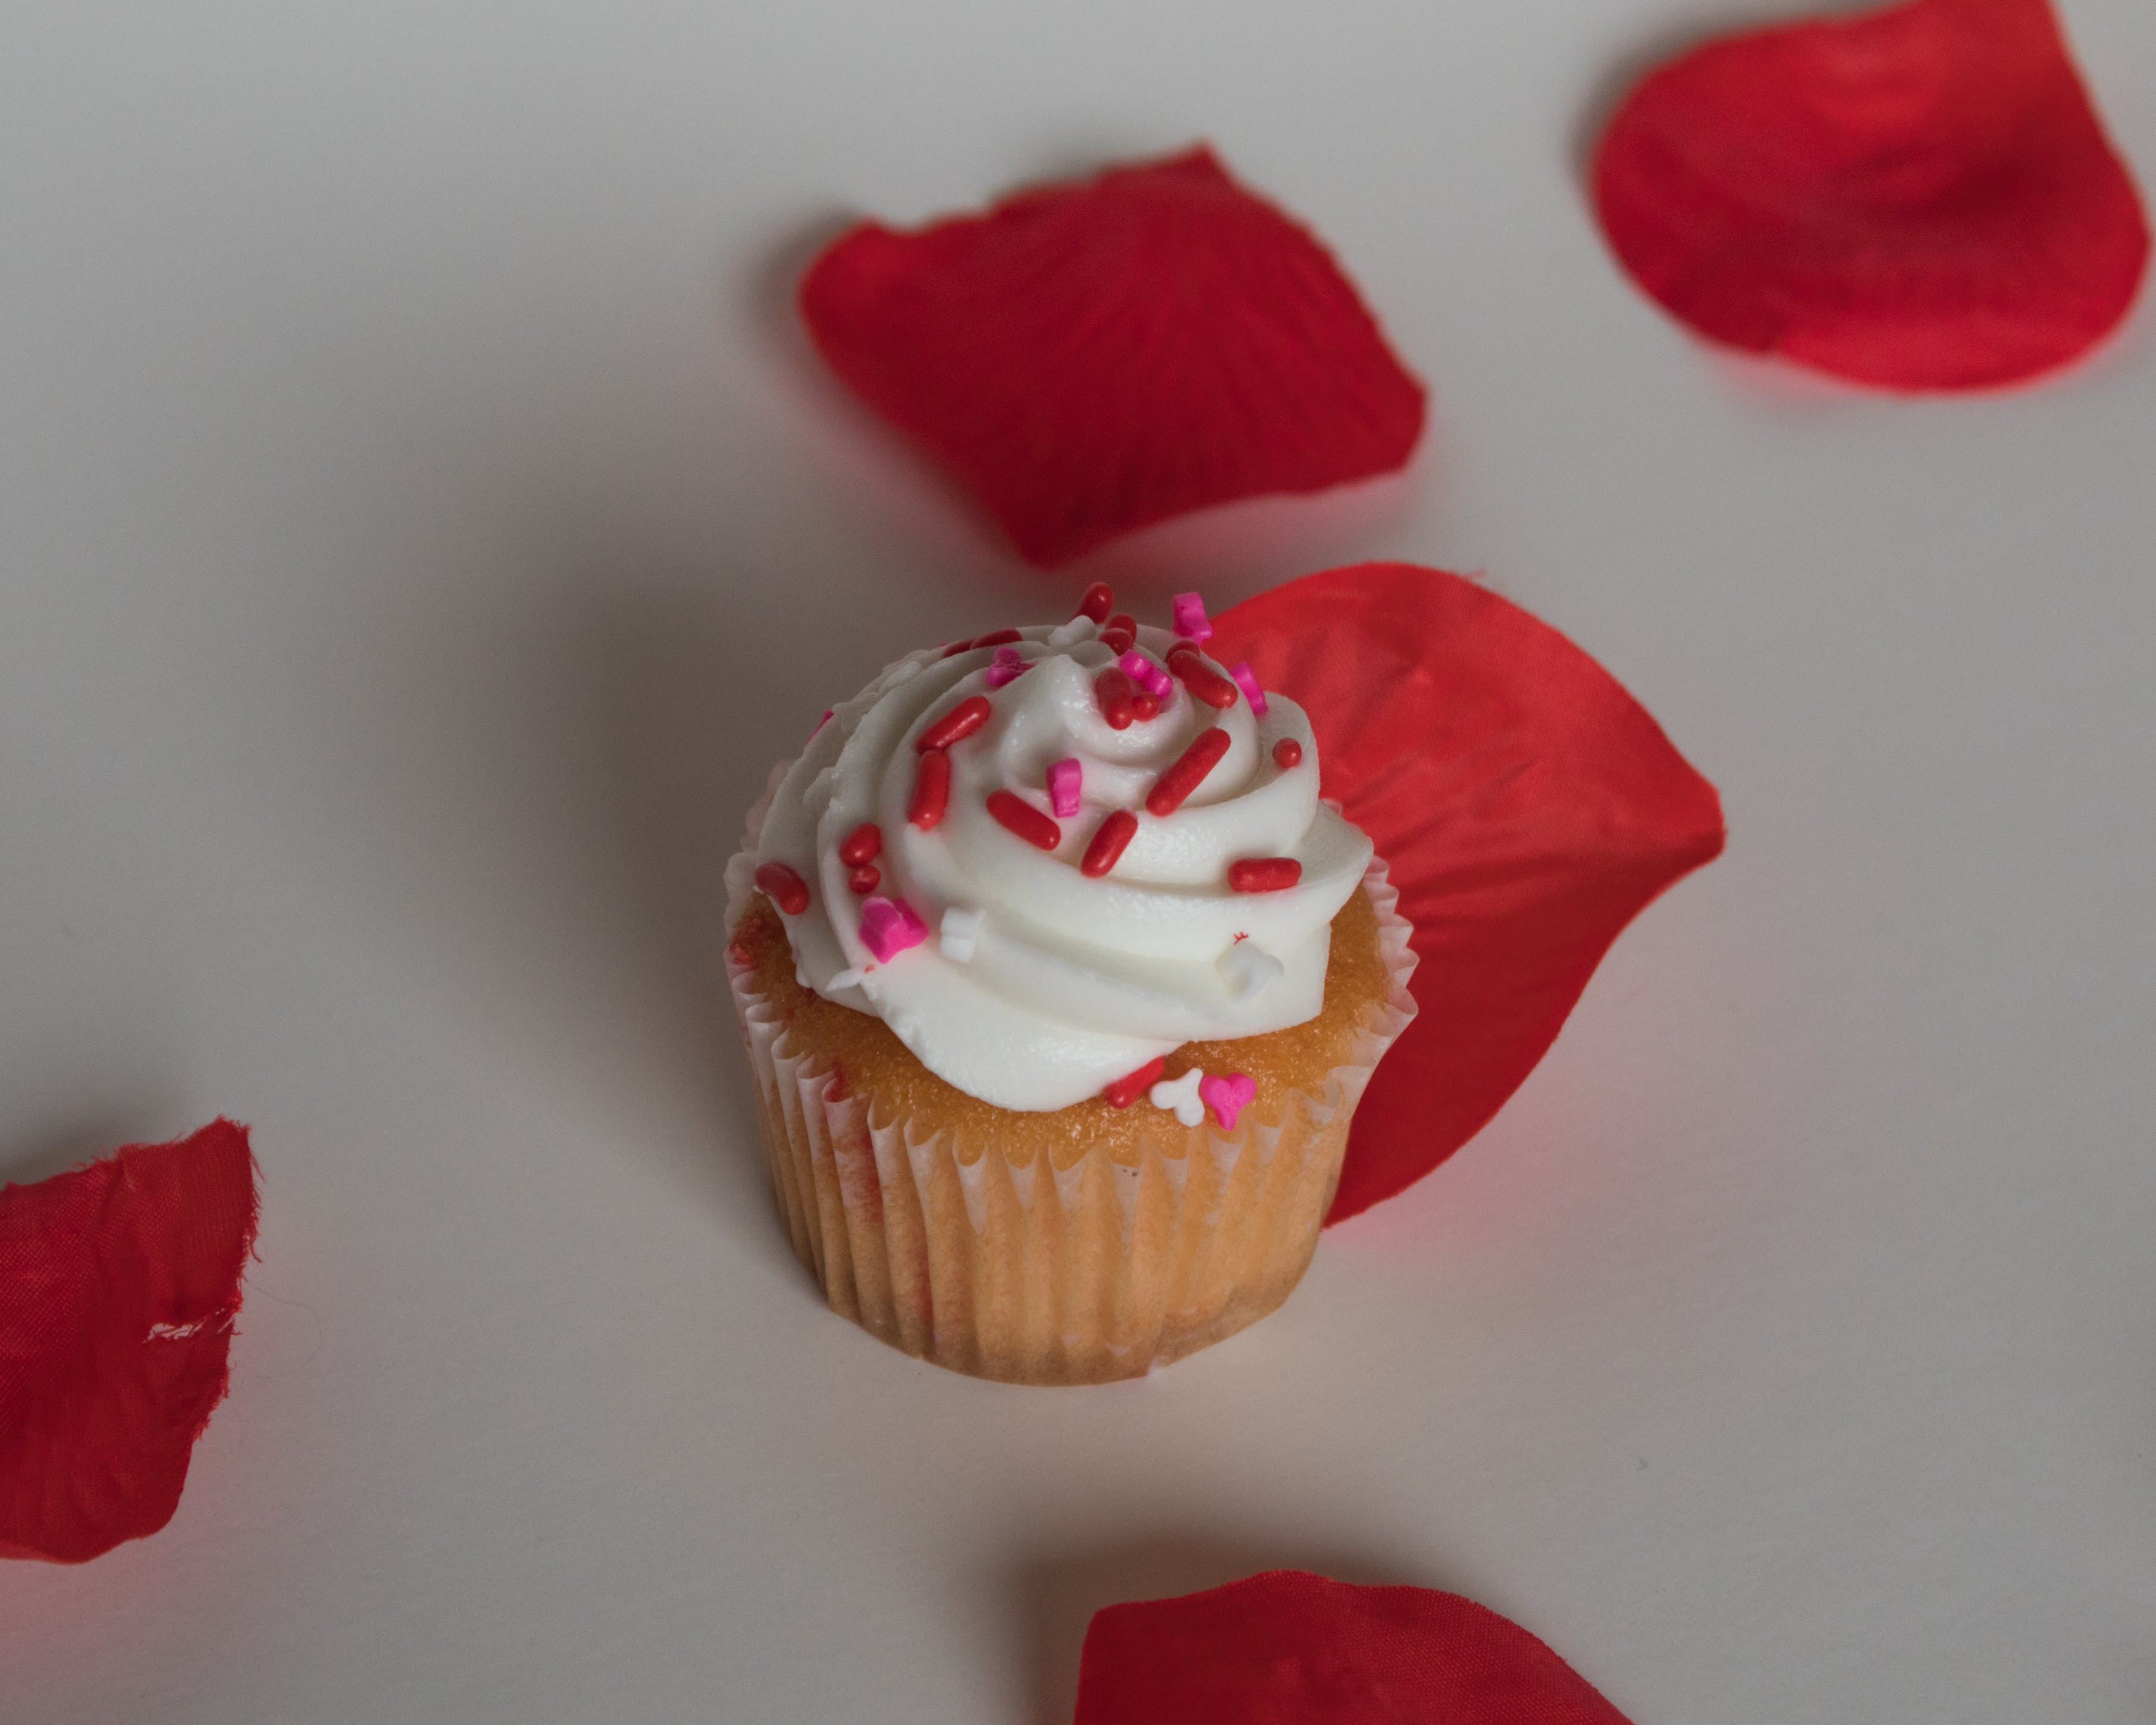 Free stock photo of cupcake, cupcakes, red